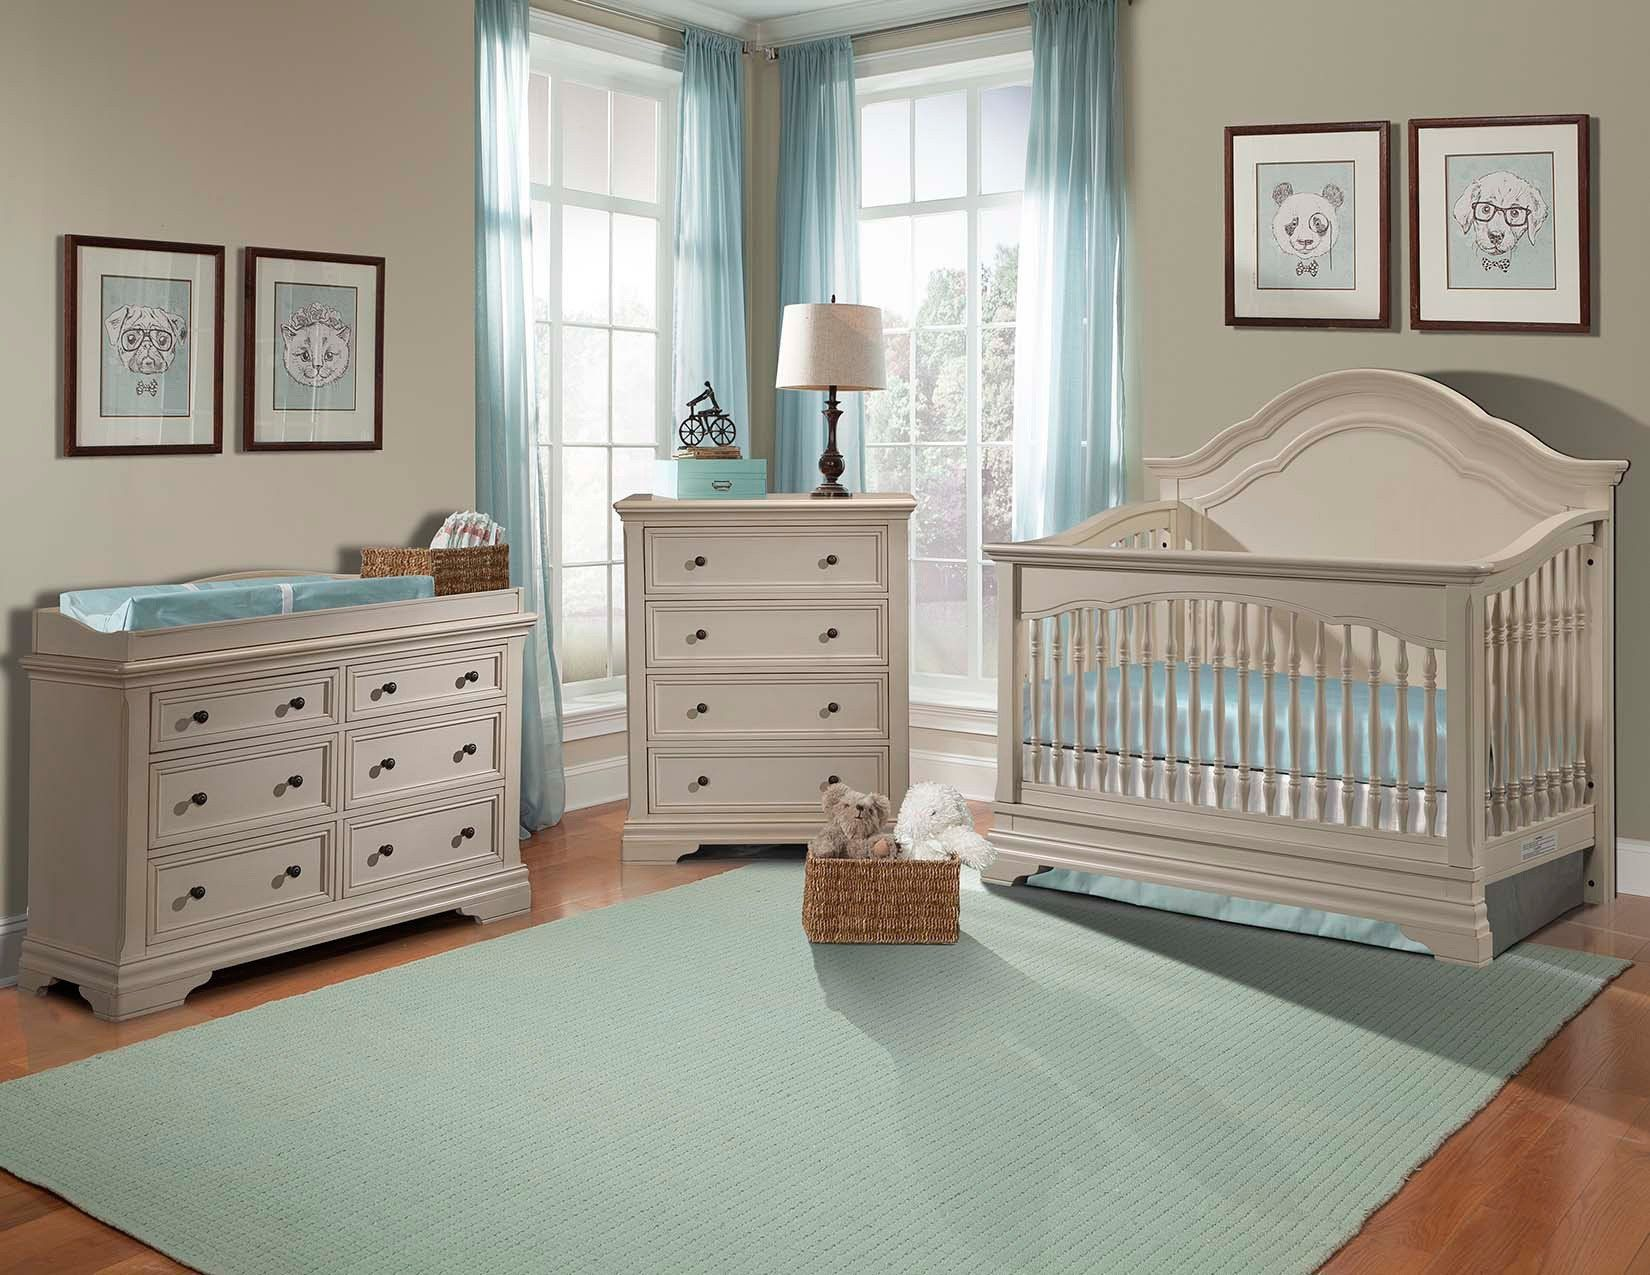 Ideas Baby Room Furniture Sets Your child today is a baby but